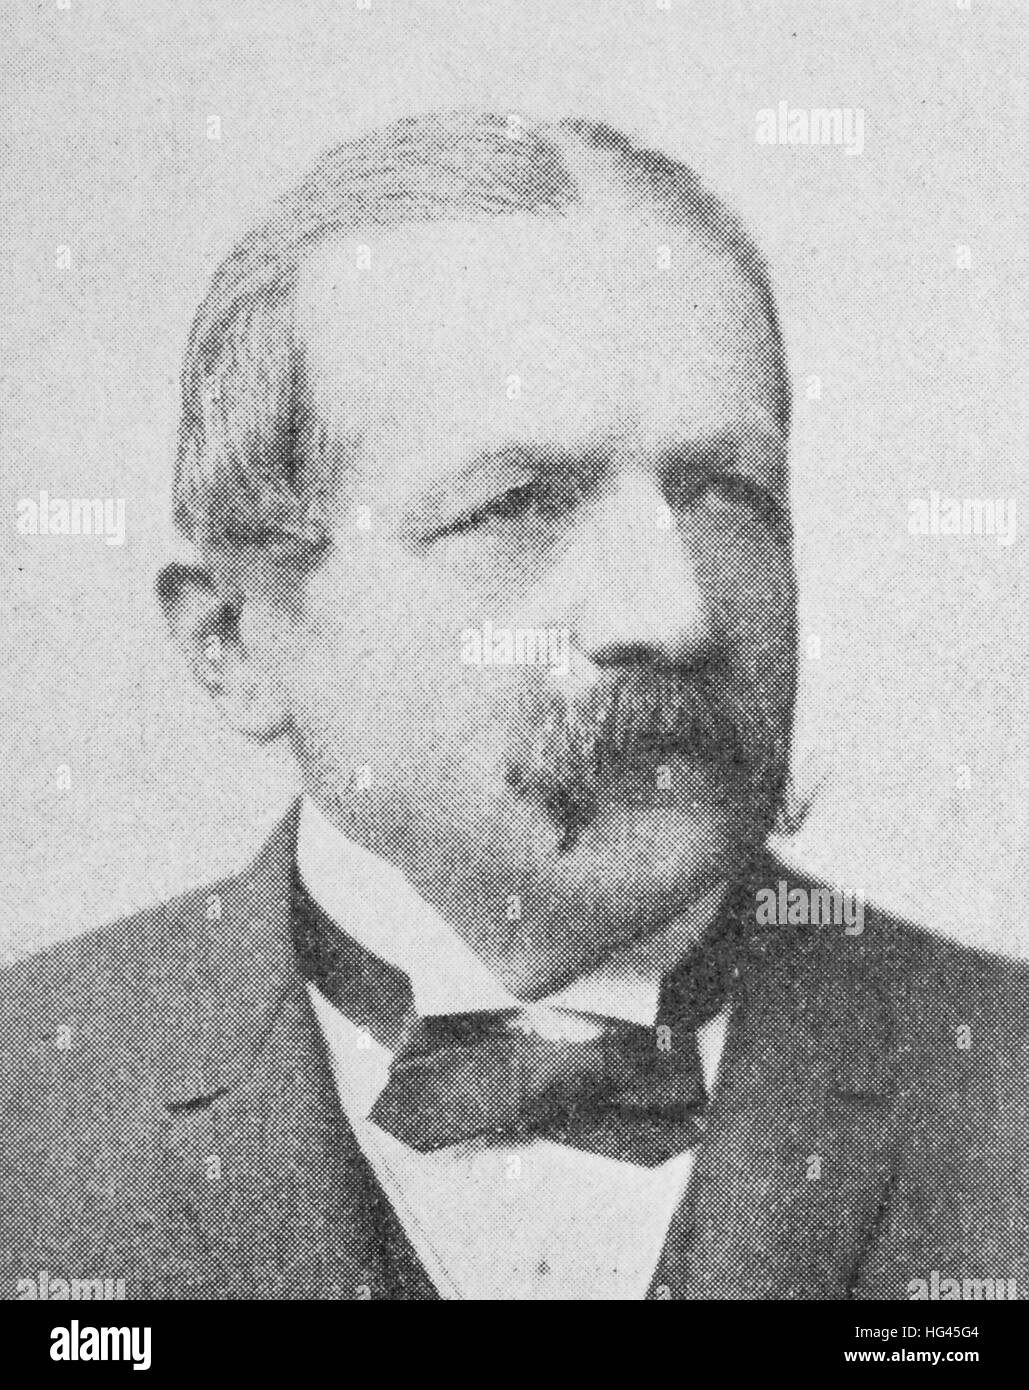 Richard Eduard Koch, From 1908 by Koch, born 15 September 1834; Died 15 October 1910, was from 1890 to 1908 president - Stock Image